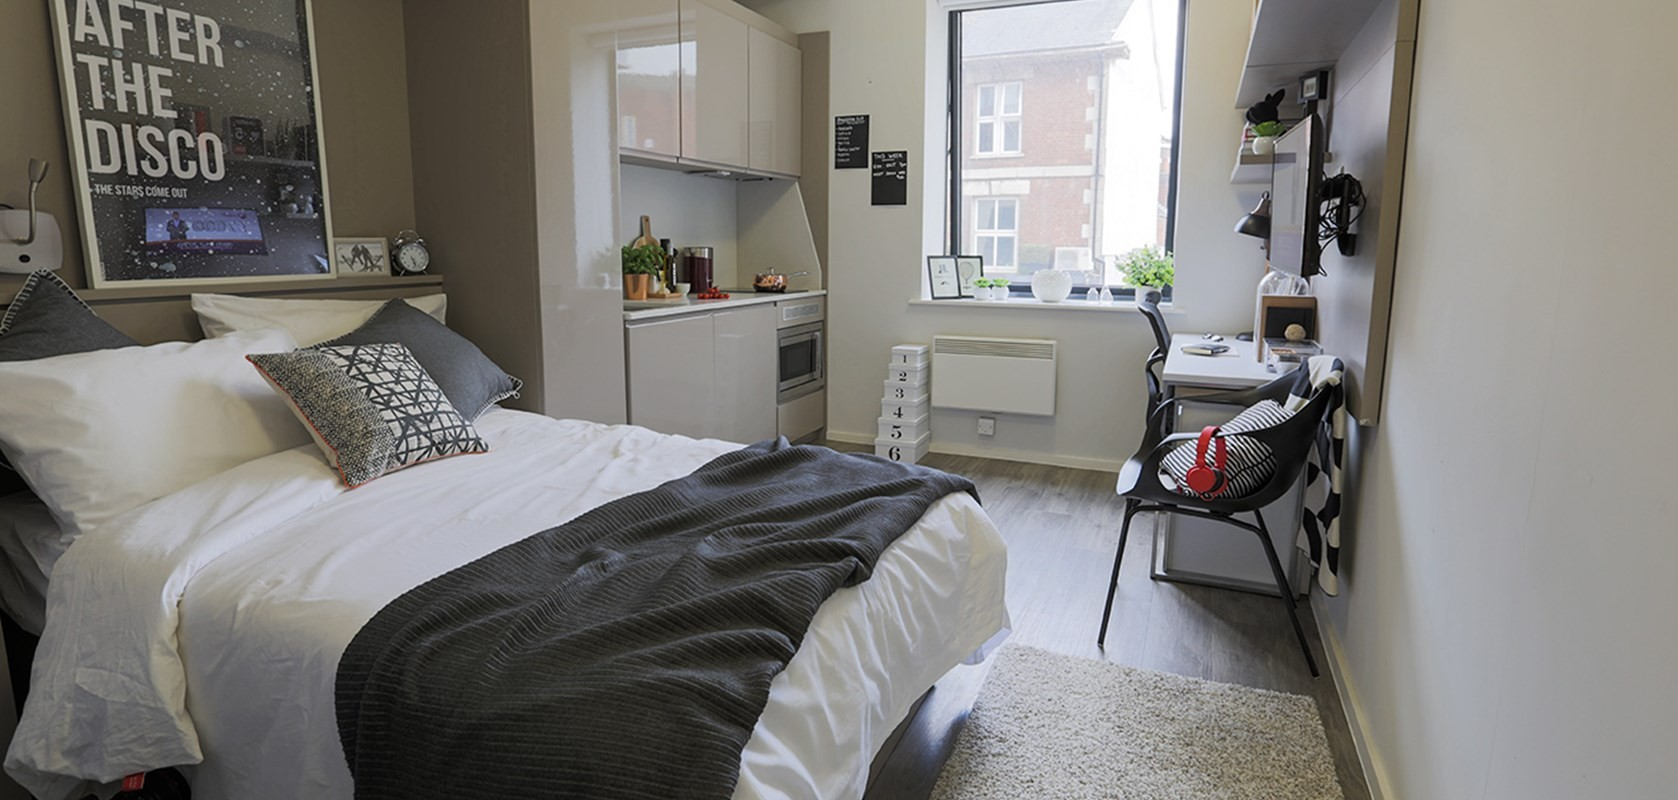 Couple Apartments Perfect For Erasmus Student Individual Or Couples To